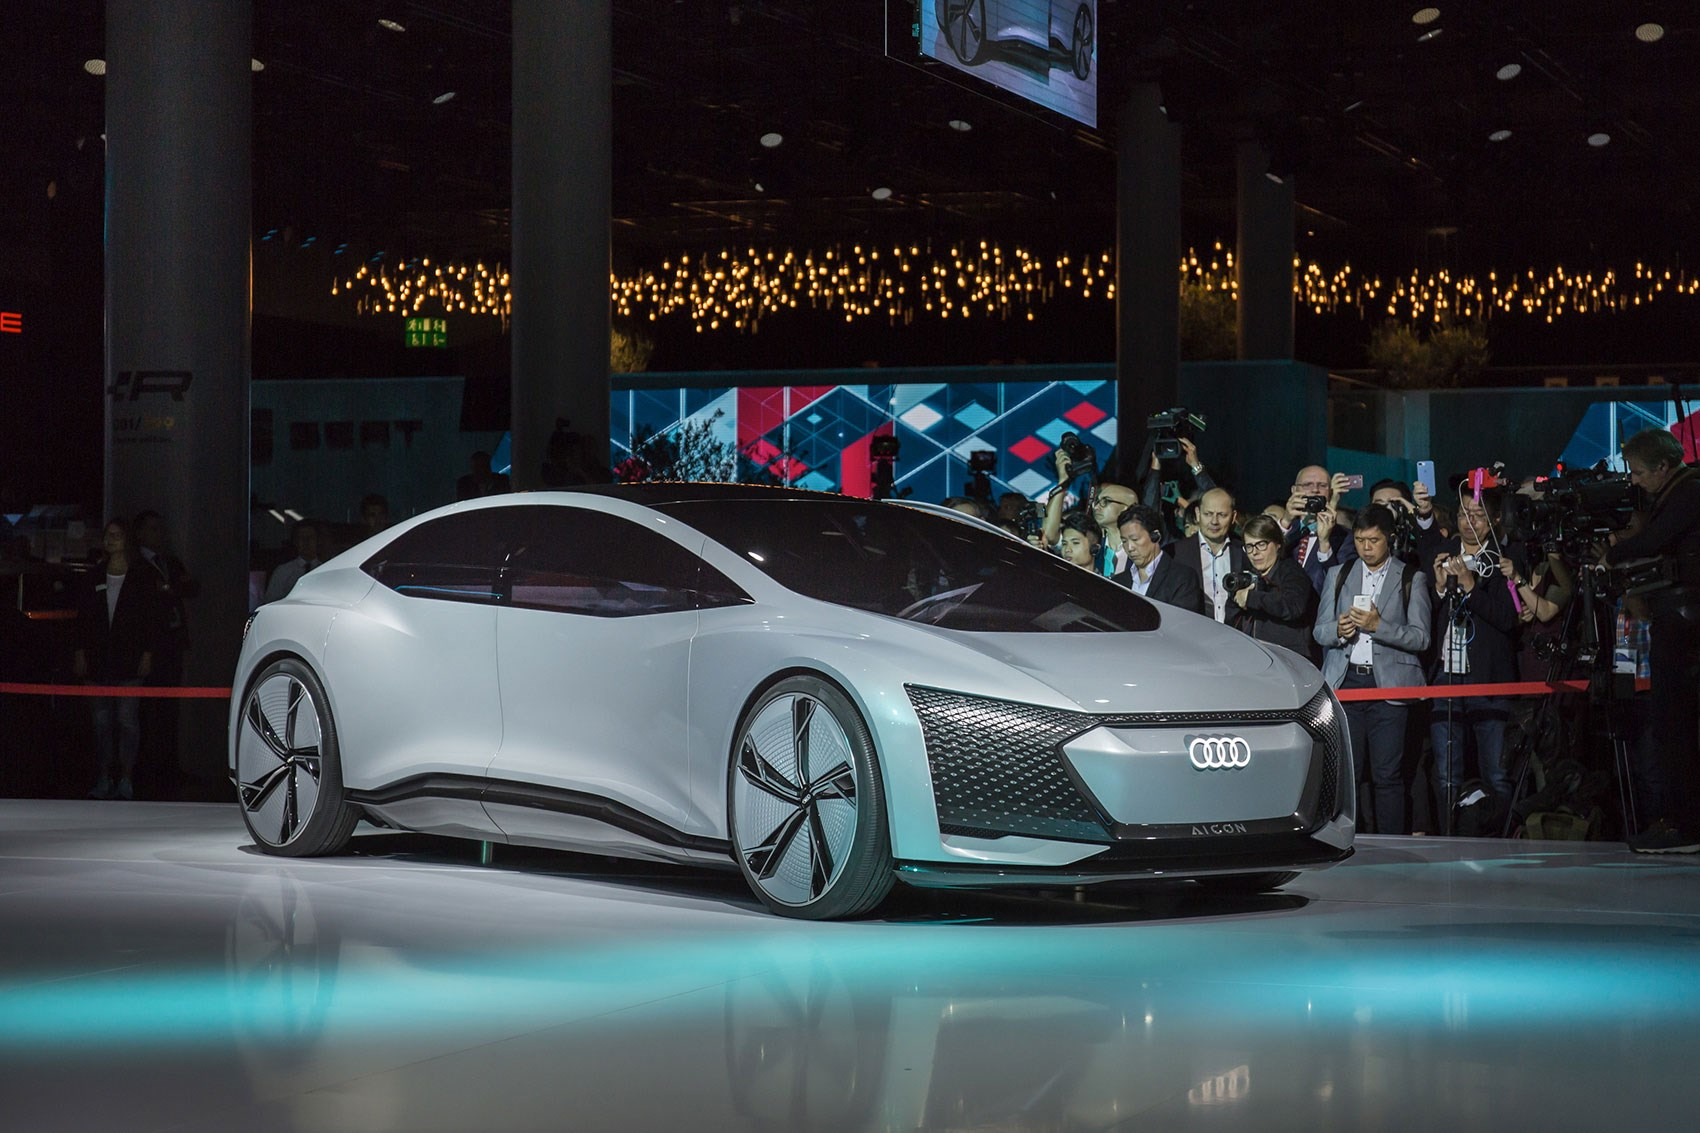 Audi Aicon And Elaine Concepts At Frankfurt Motor Show CAR - Audi car show